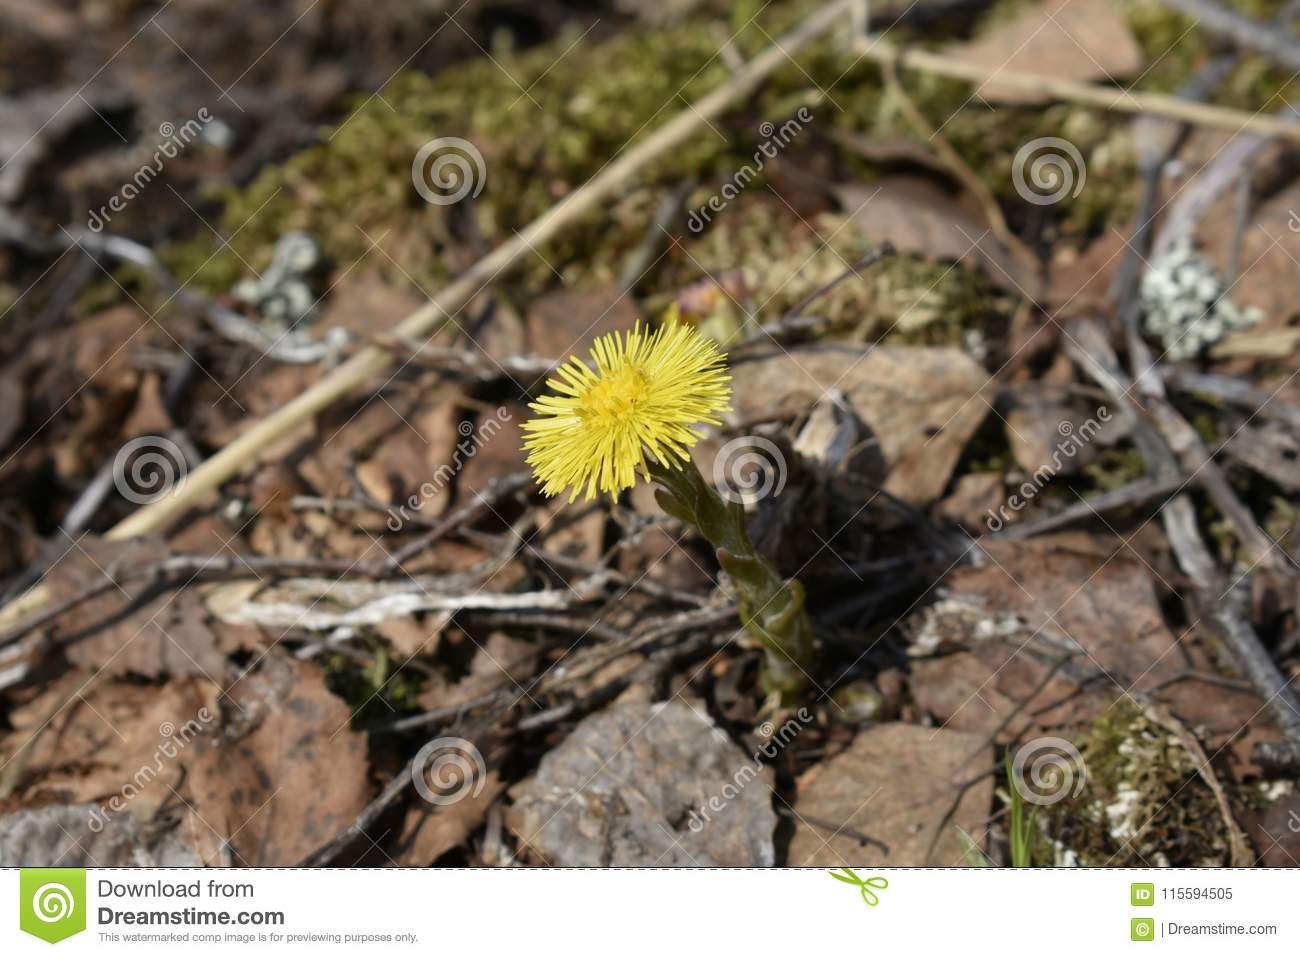 Tussilago farfara is the only accepted species in the genus Tussilago